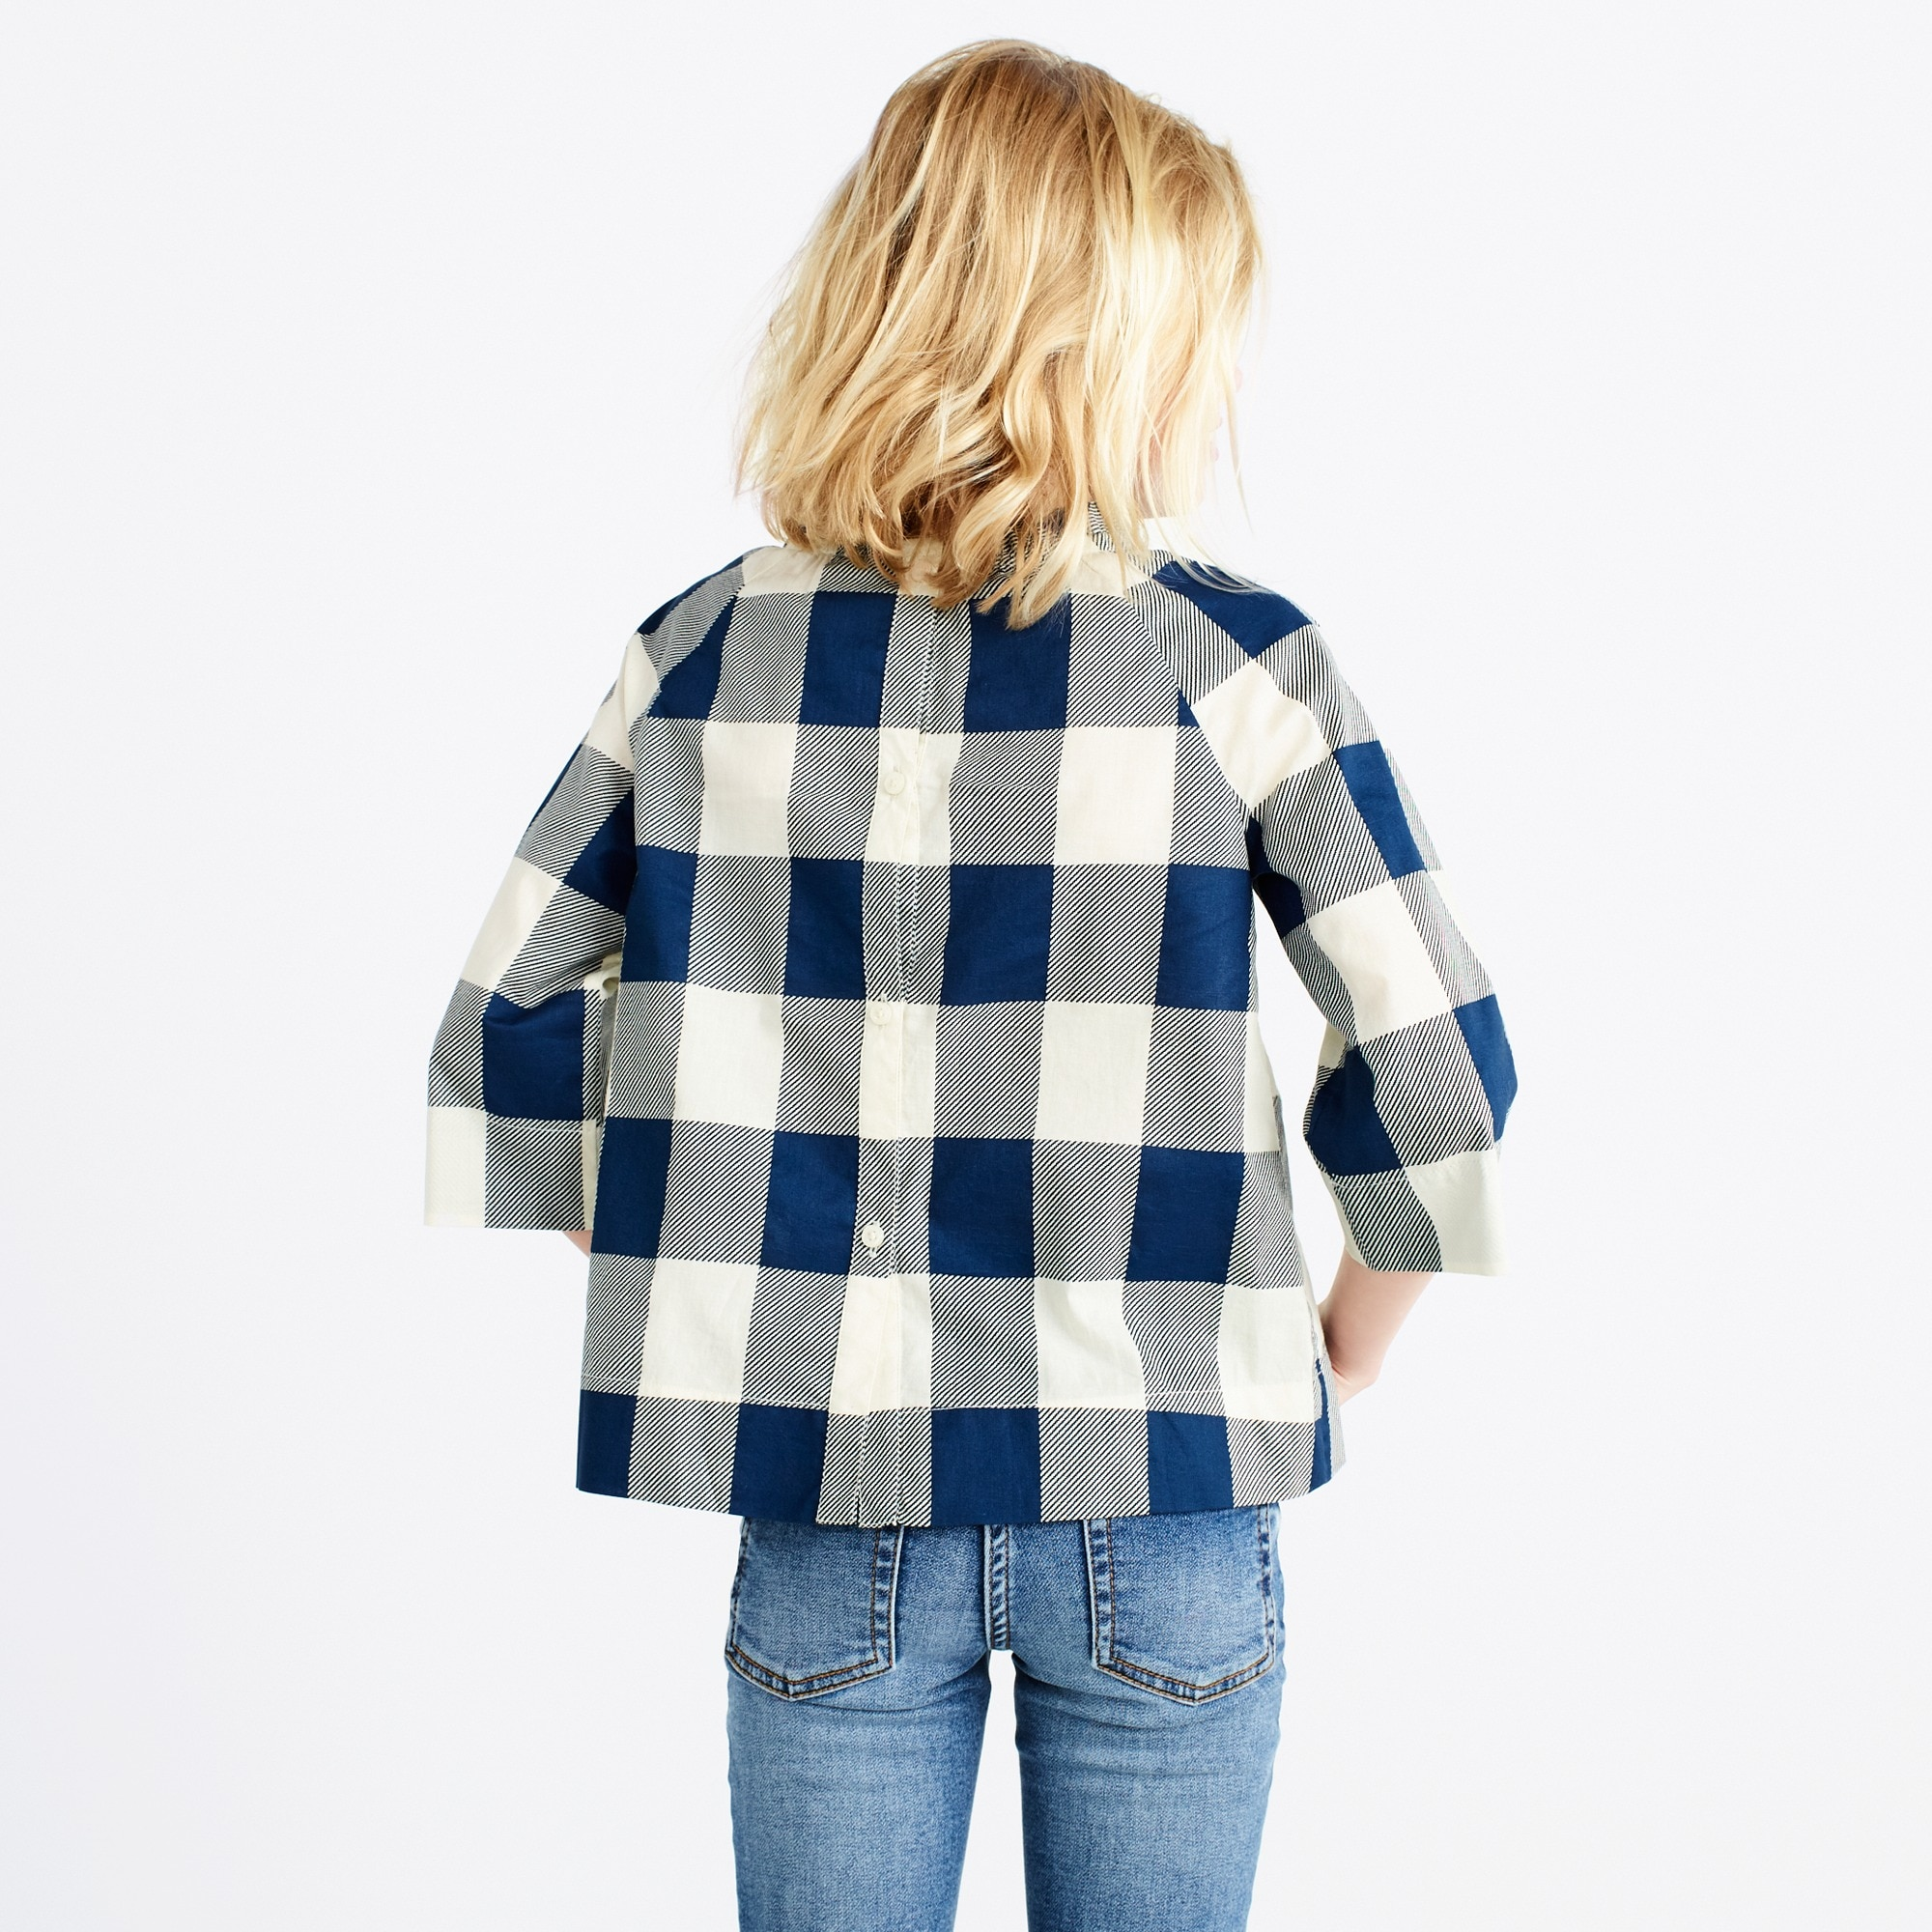 Image 3 for Girls' ruffle-neck top in gingham